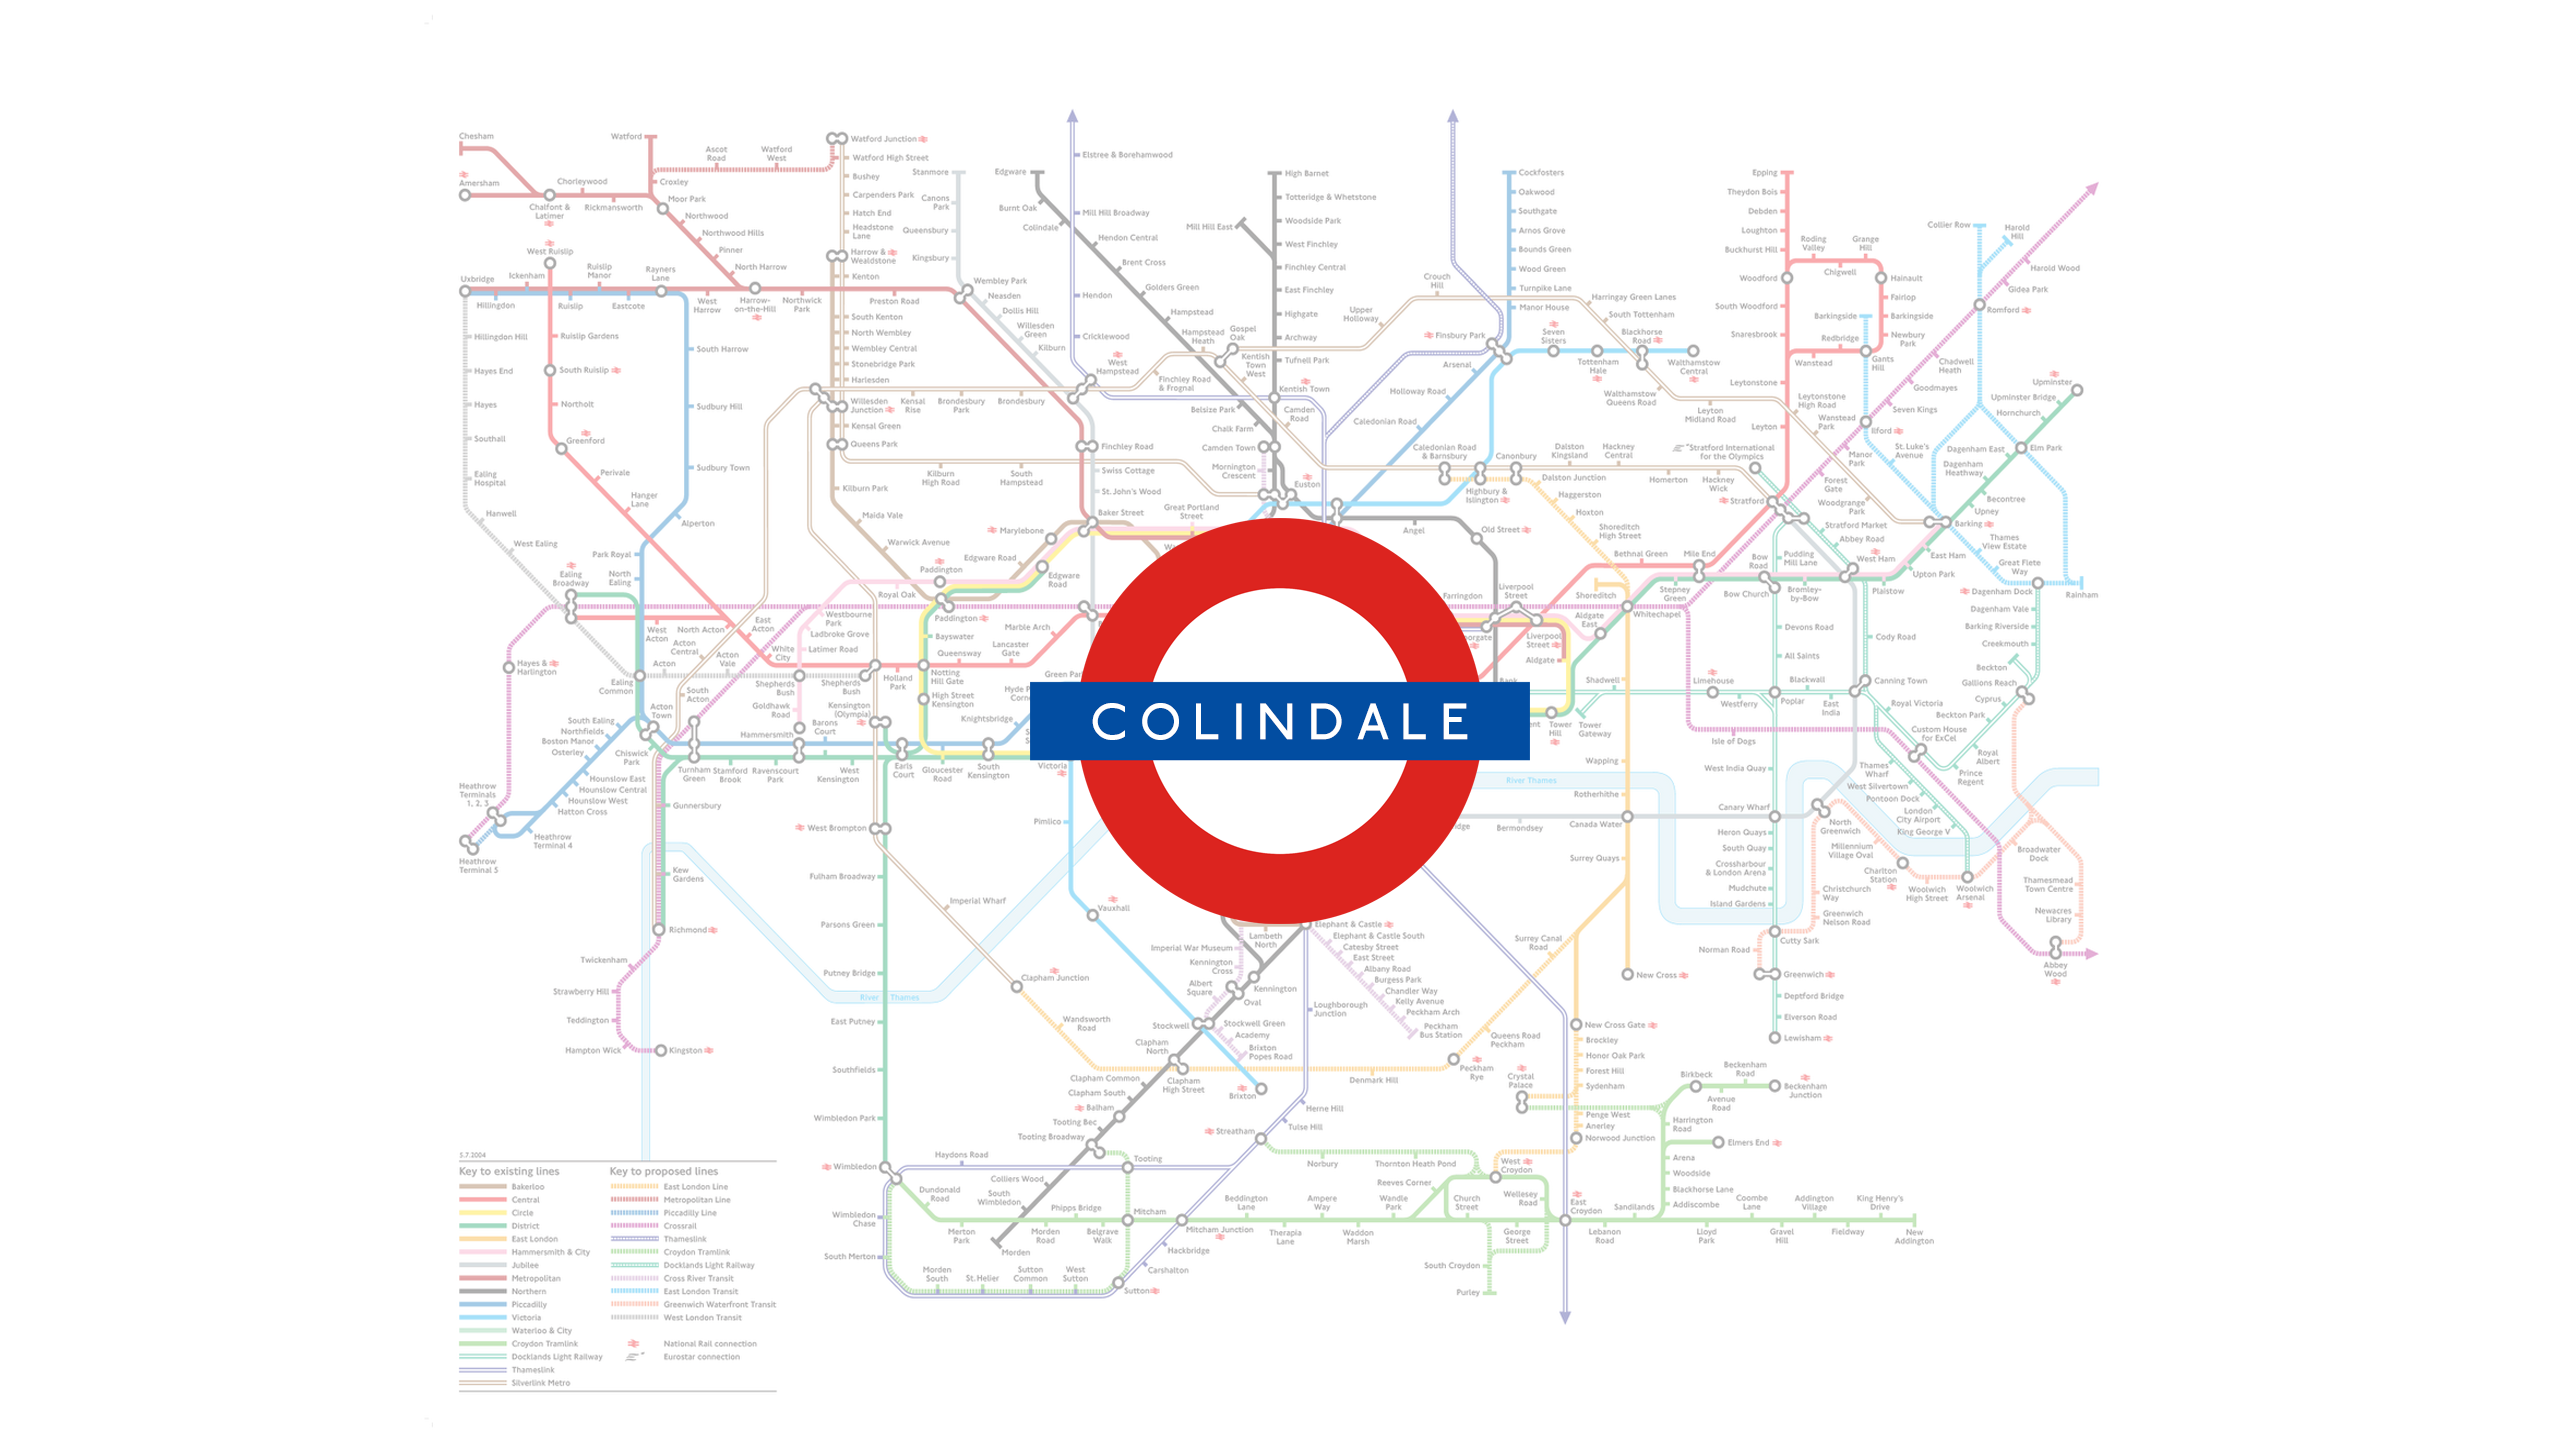 Colindale (Map)